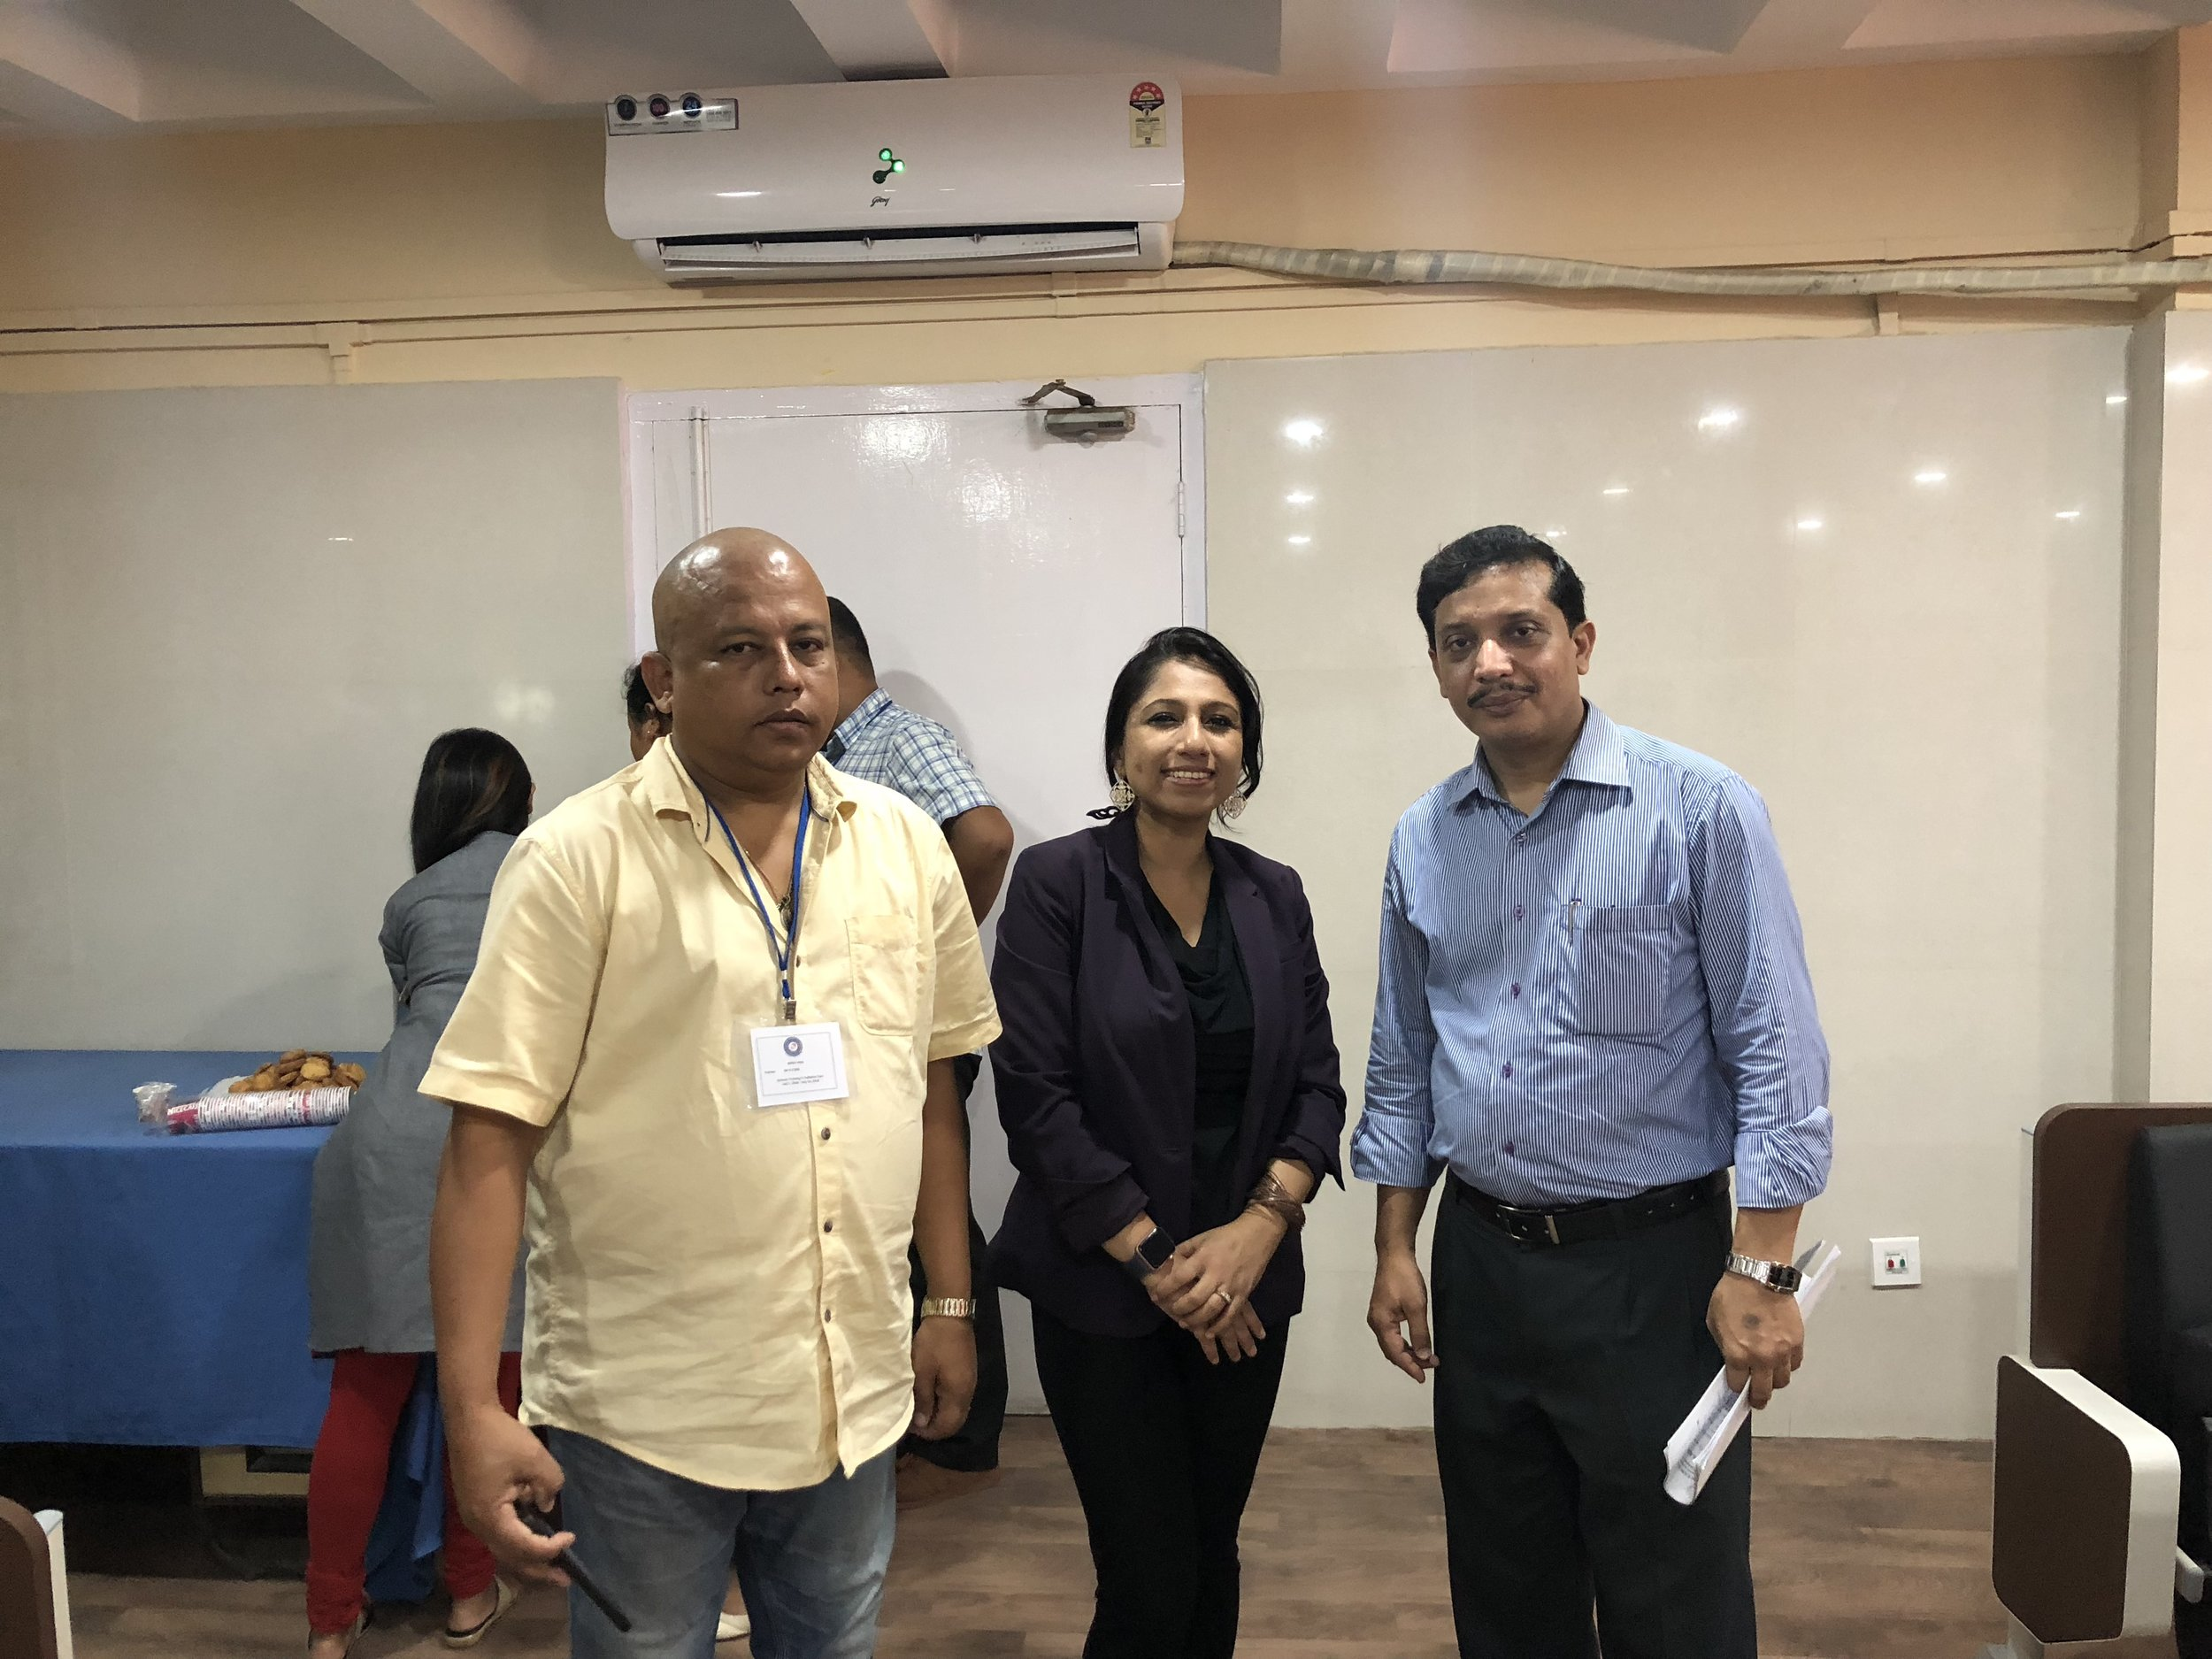 With Dr. H. K Das, Assistant Director (Public Health), ICMR, Dibrugarh and Dr. Kabindra Bhagabaty, Palliative Care Department, Dr. B. Borooah Cancer Center.